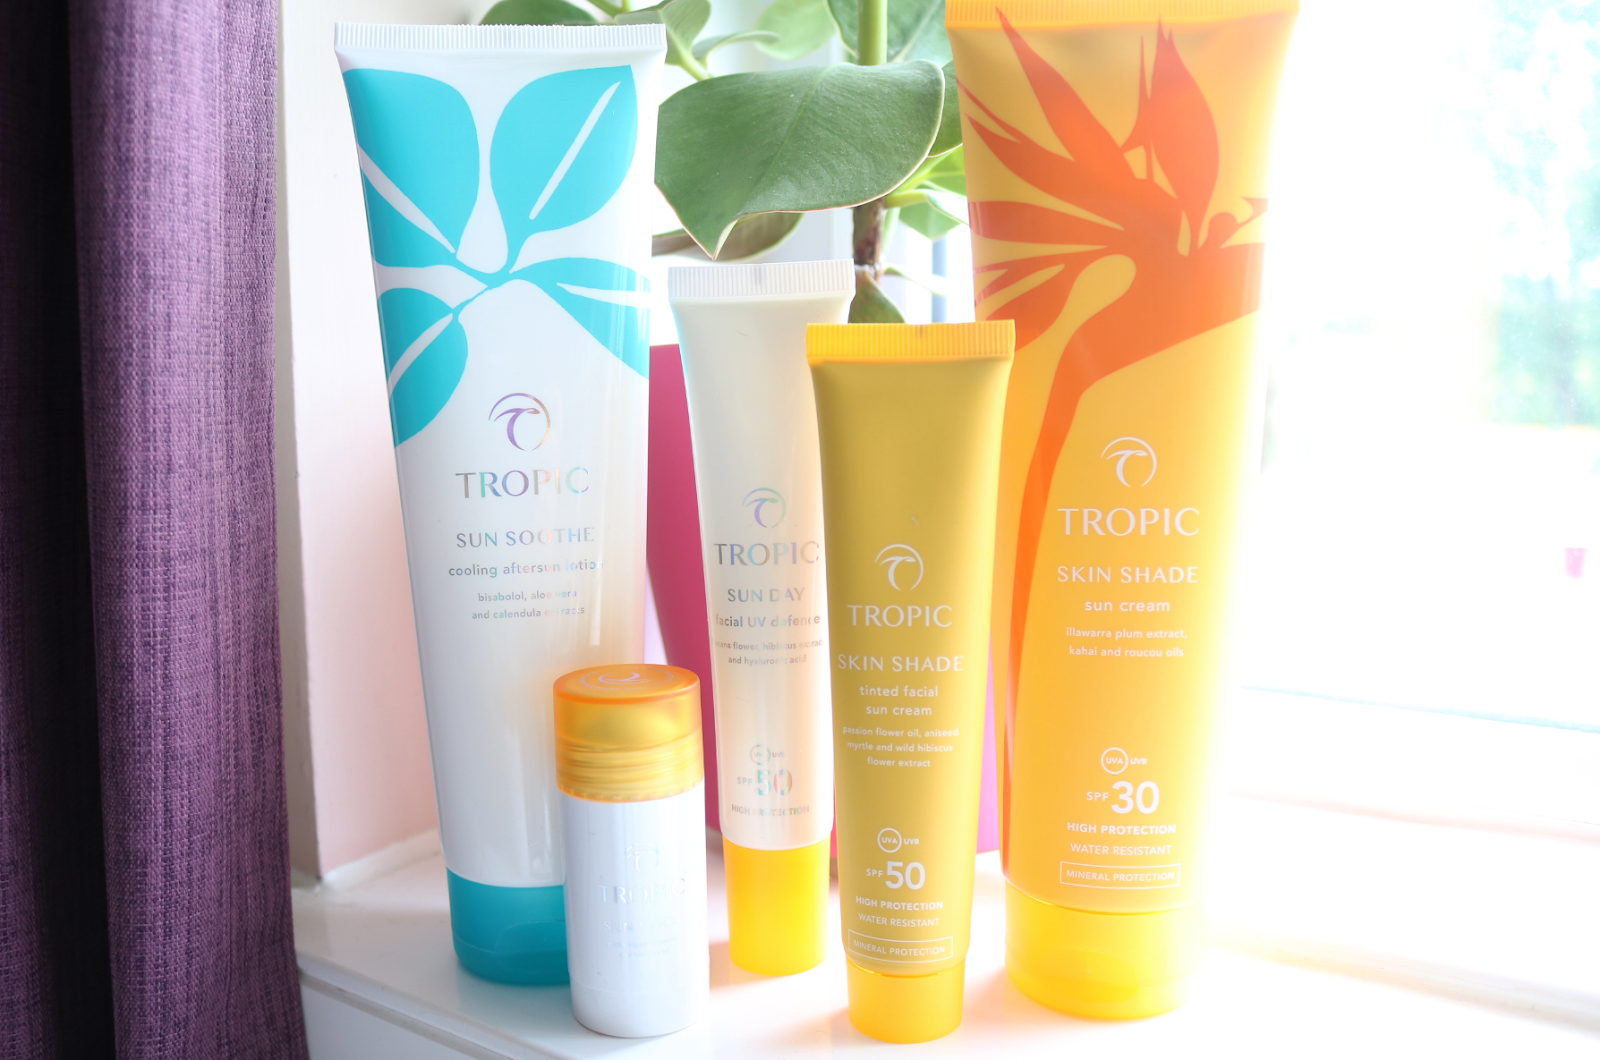 Tropic Suncare range - Skin Shade Sun Cream, Sun Day Facial UV Defence, Sun Stick & Sun Soothe Aftersun review